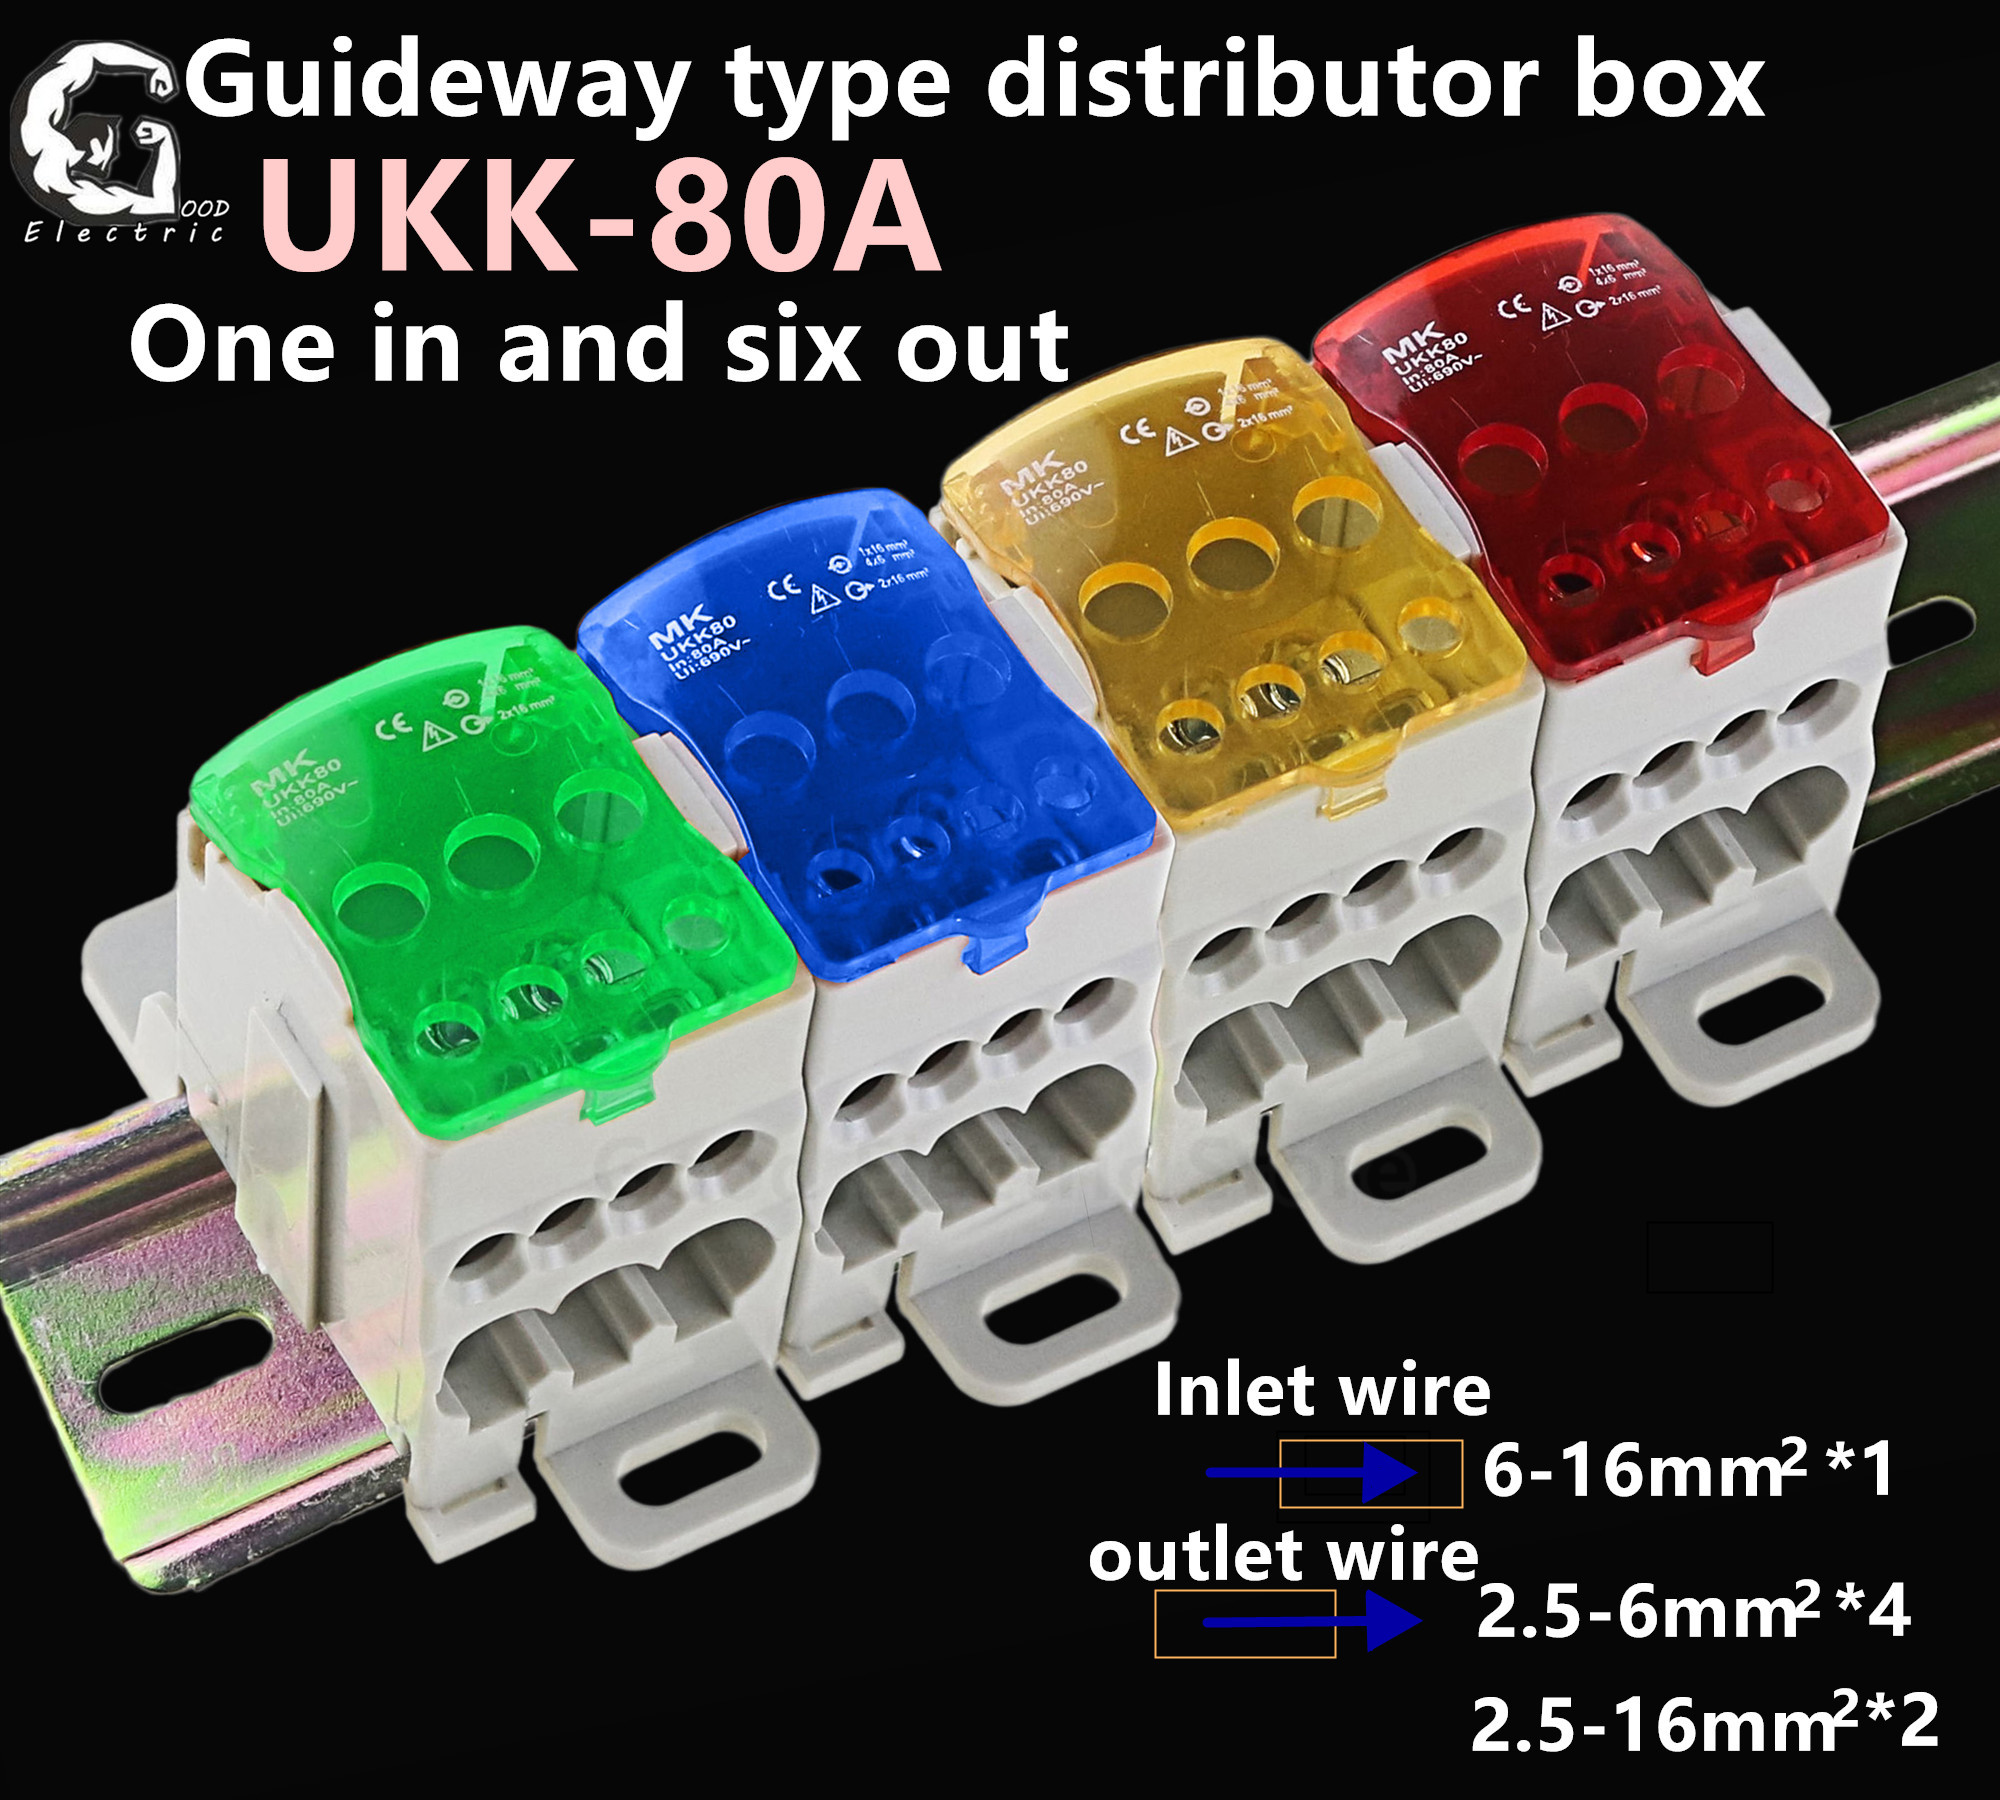 1PCS UKK80A UKK125A UKK160A UKK250A UKK400A UKK500A Connector Terminal Block 1 In Many Out Din Rail Distribution Box ukk-80a image